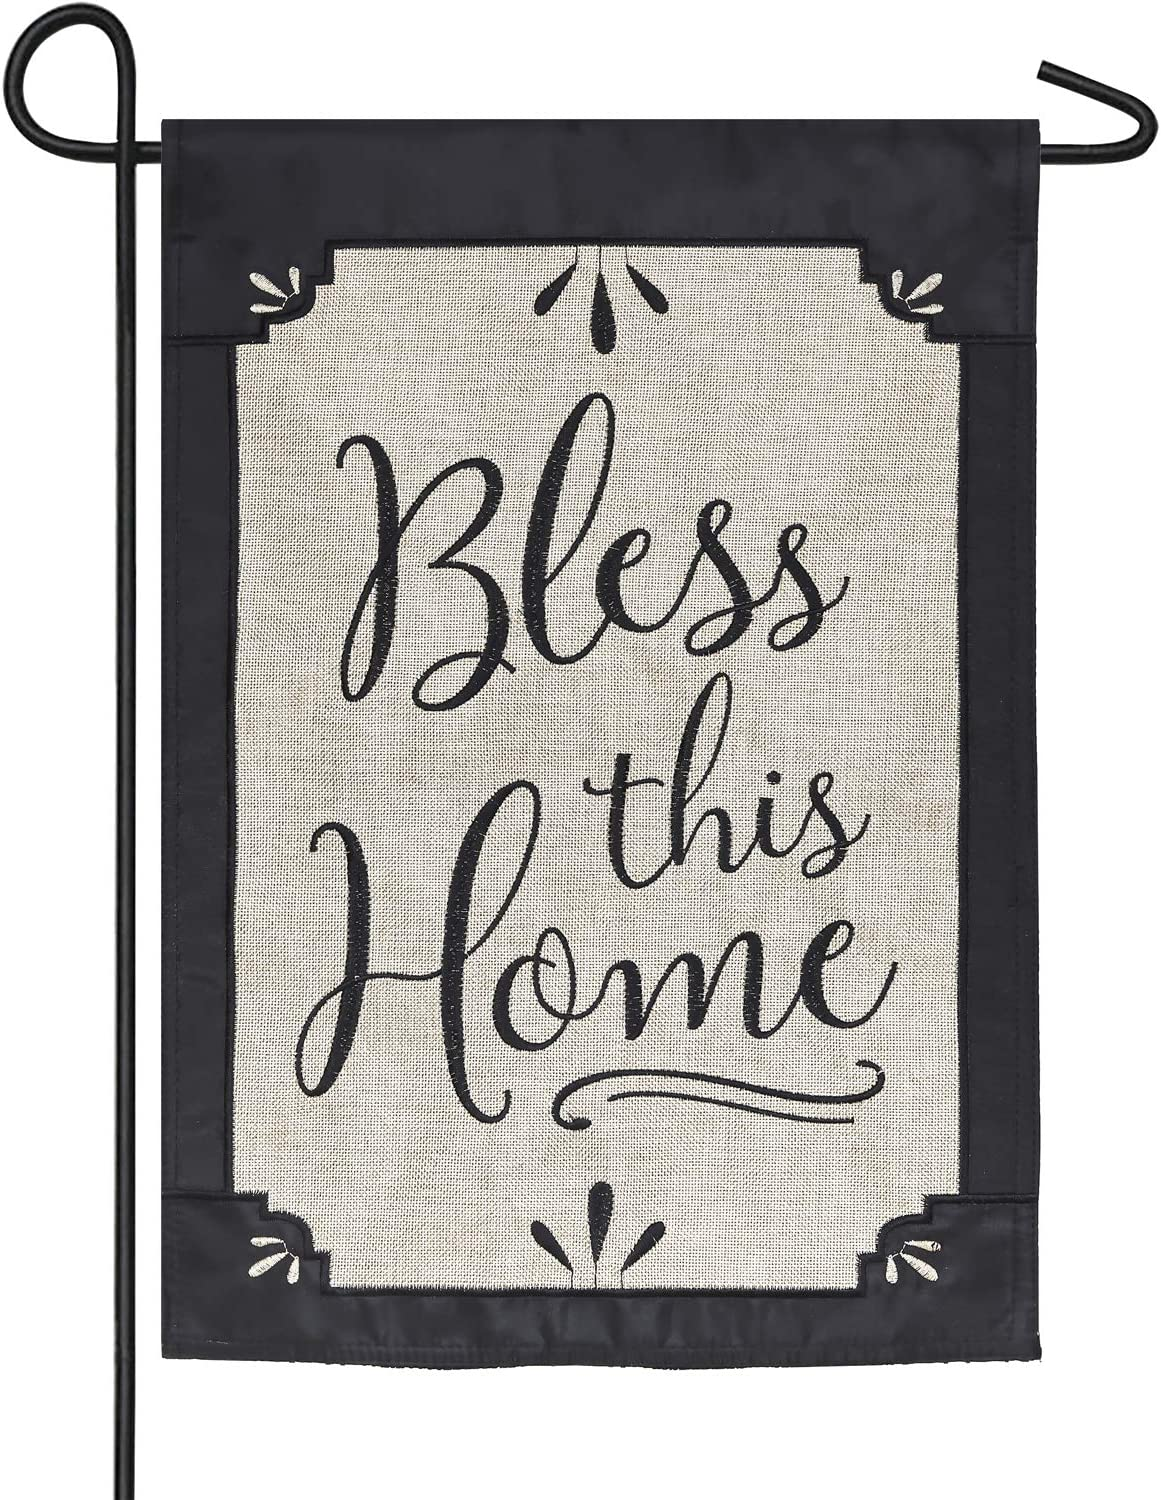 Evergreen Flag Bless This Home Burlap Garden Flag - 12.5 x 18 Inches Outdoor Decor for Homes and Gardens